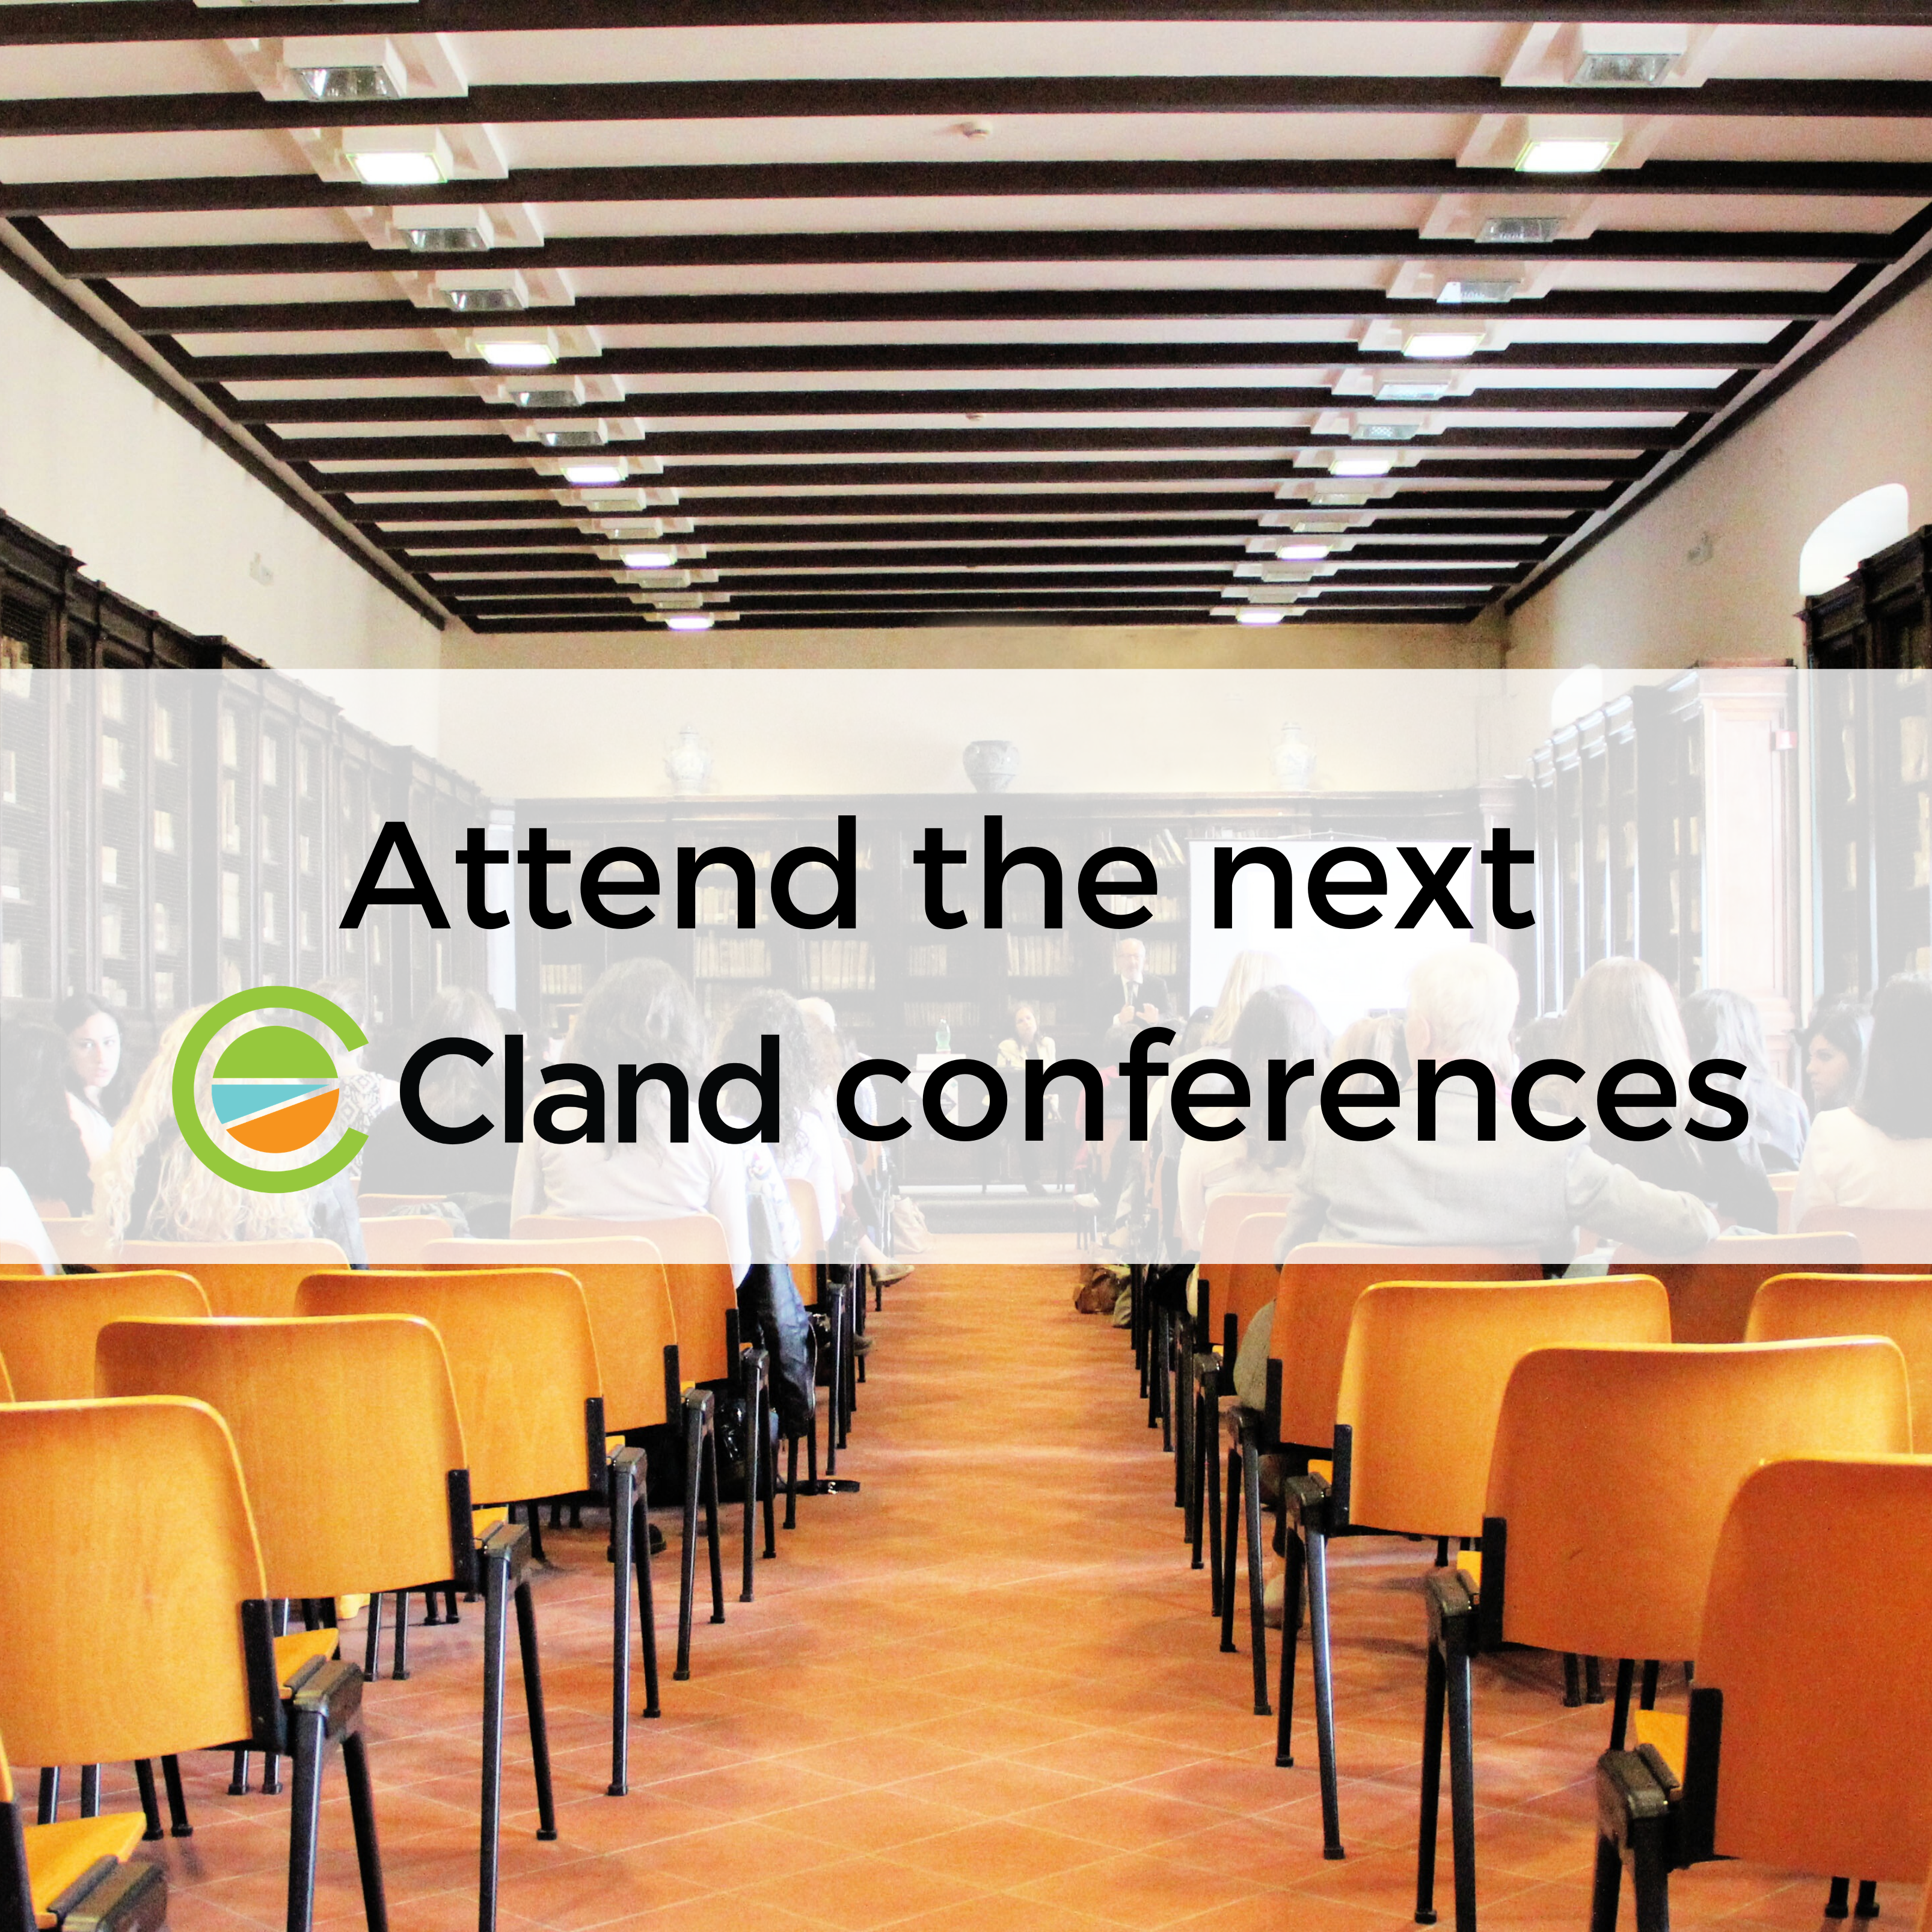 attend the cland conferences